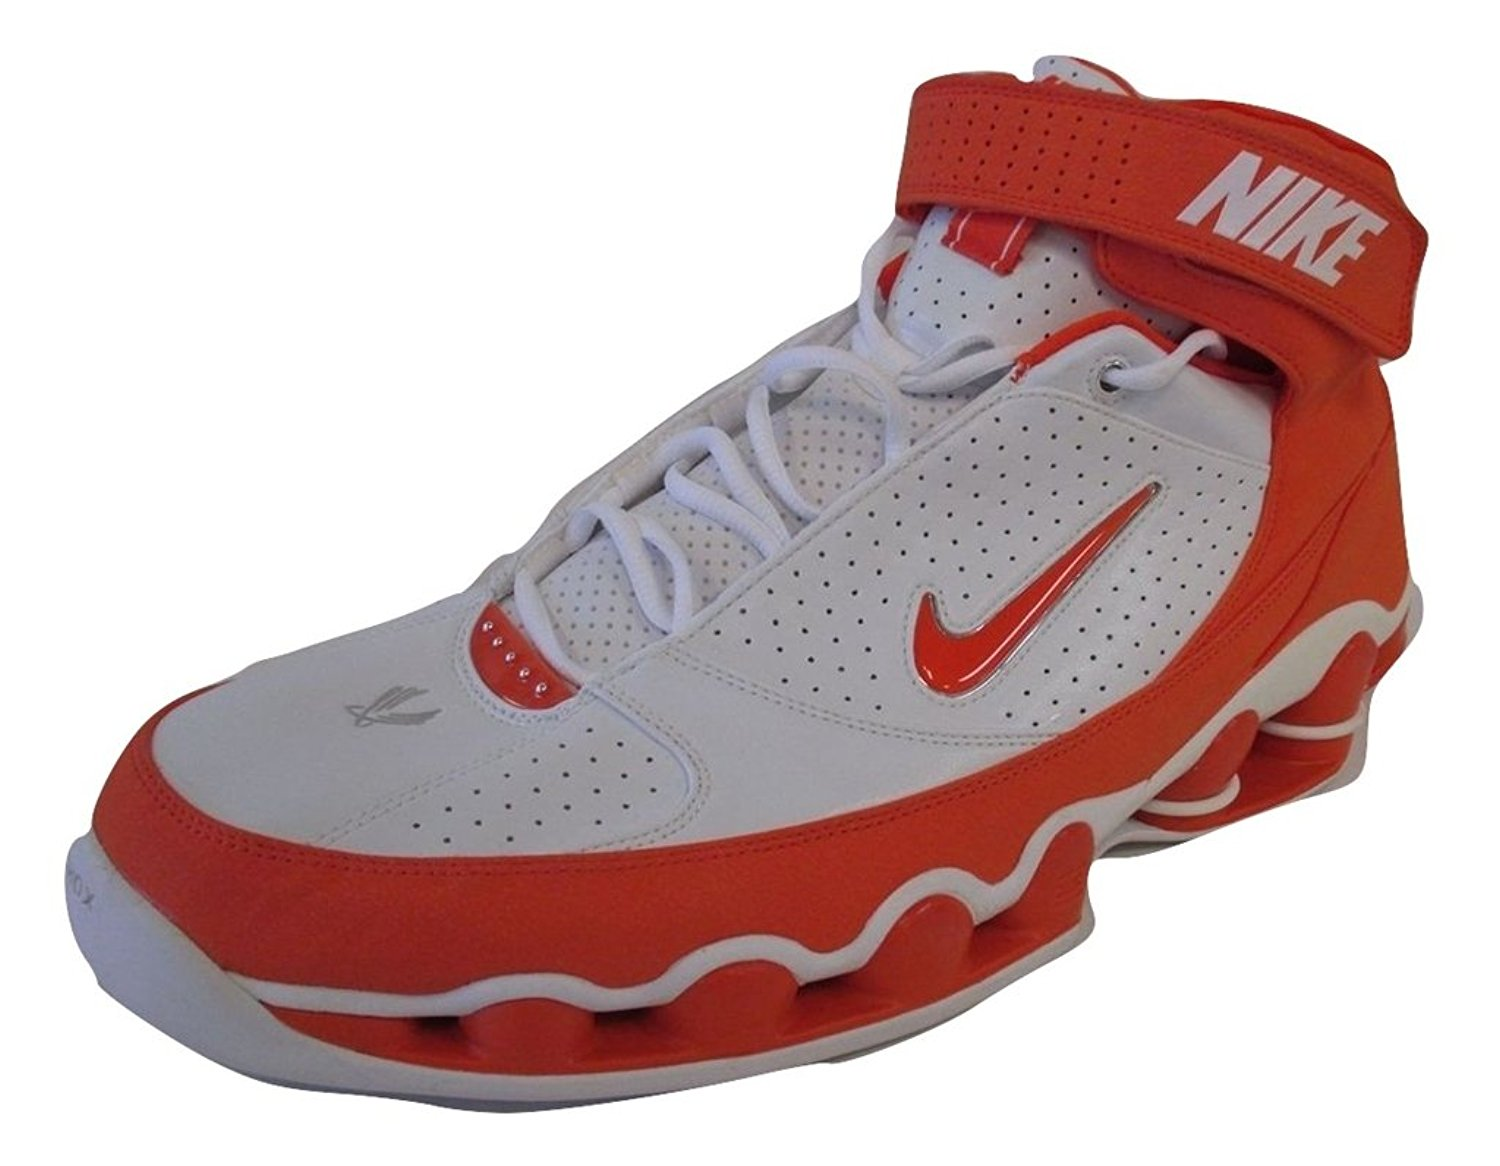 hot sale online dd9dd 29335 Nike Men s Shox Ups TB Basketball Shoes White Safety Orange 17 ...